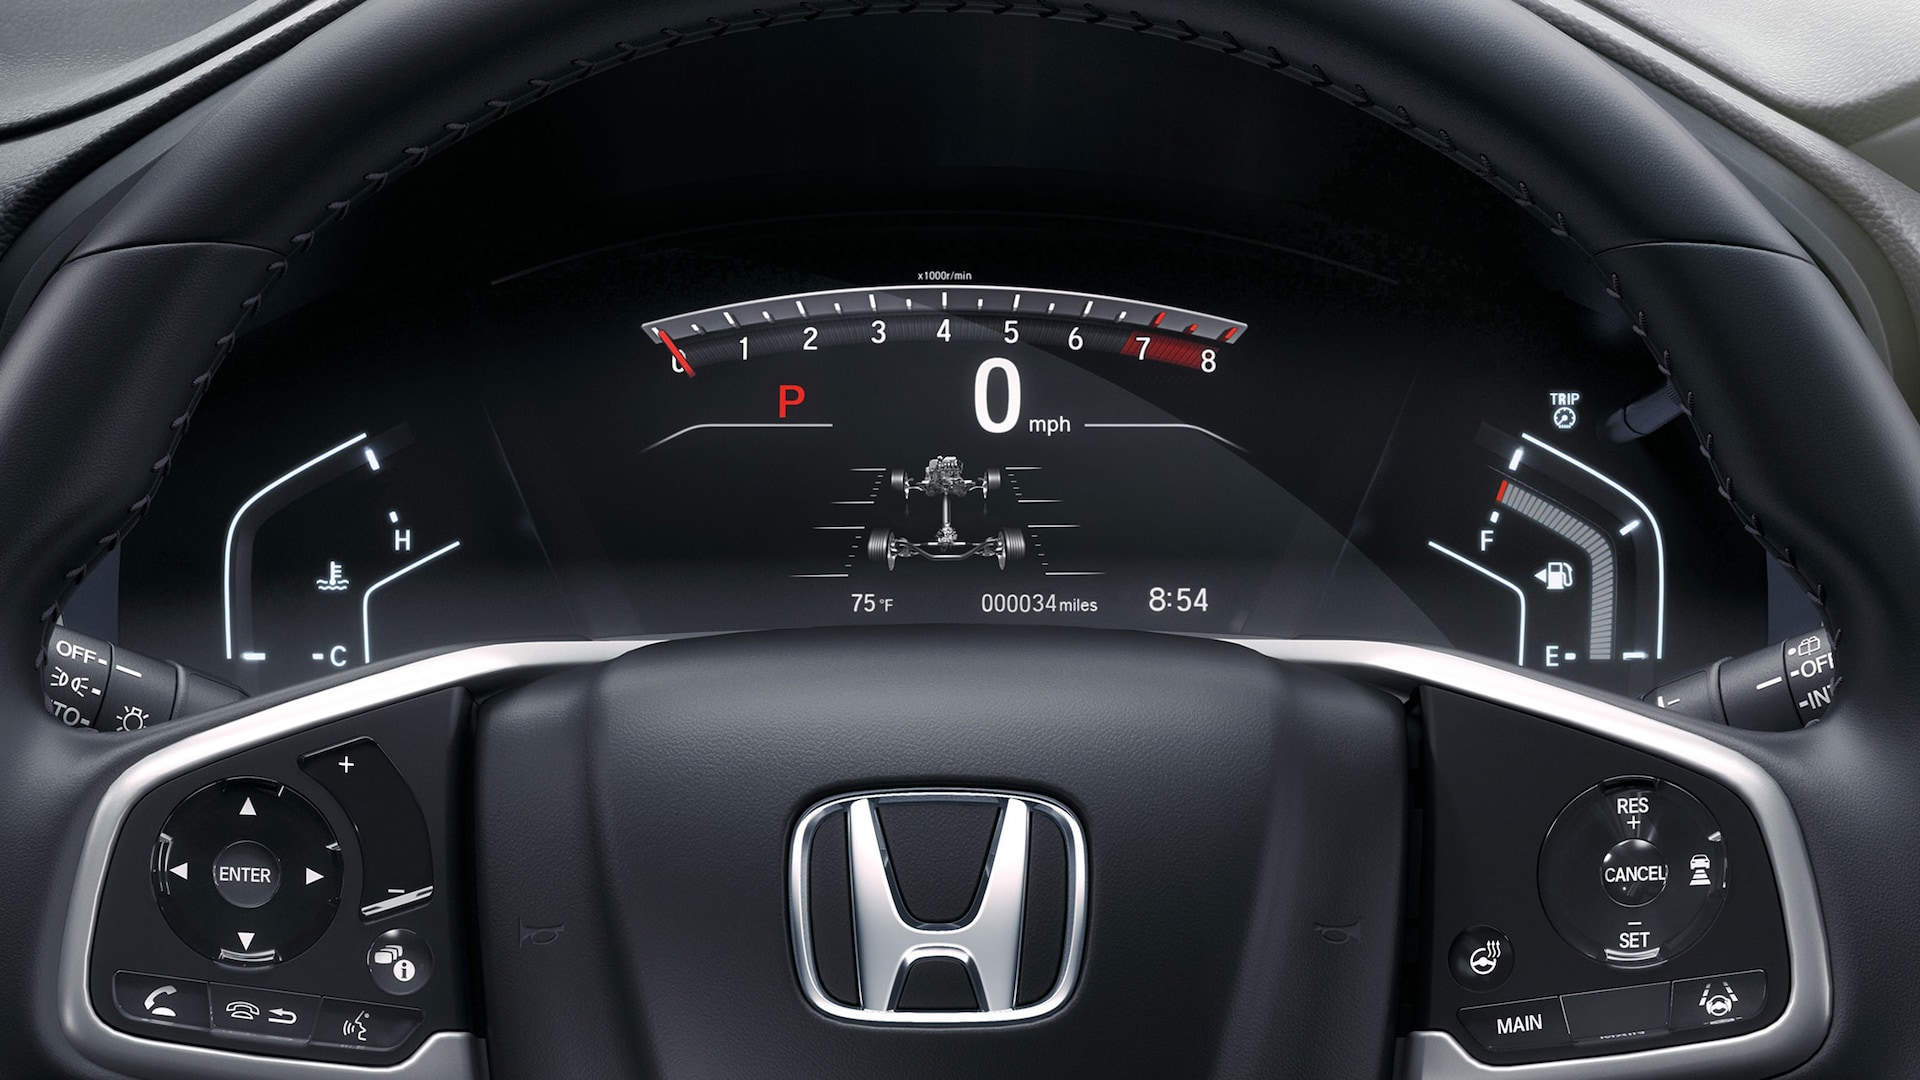 Instrument panel detail in the 2021 Honda CR-V Touring.